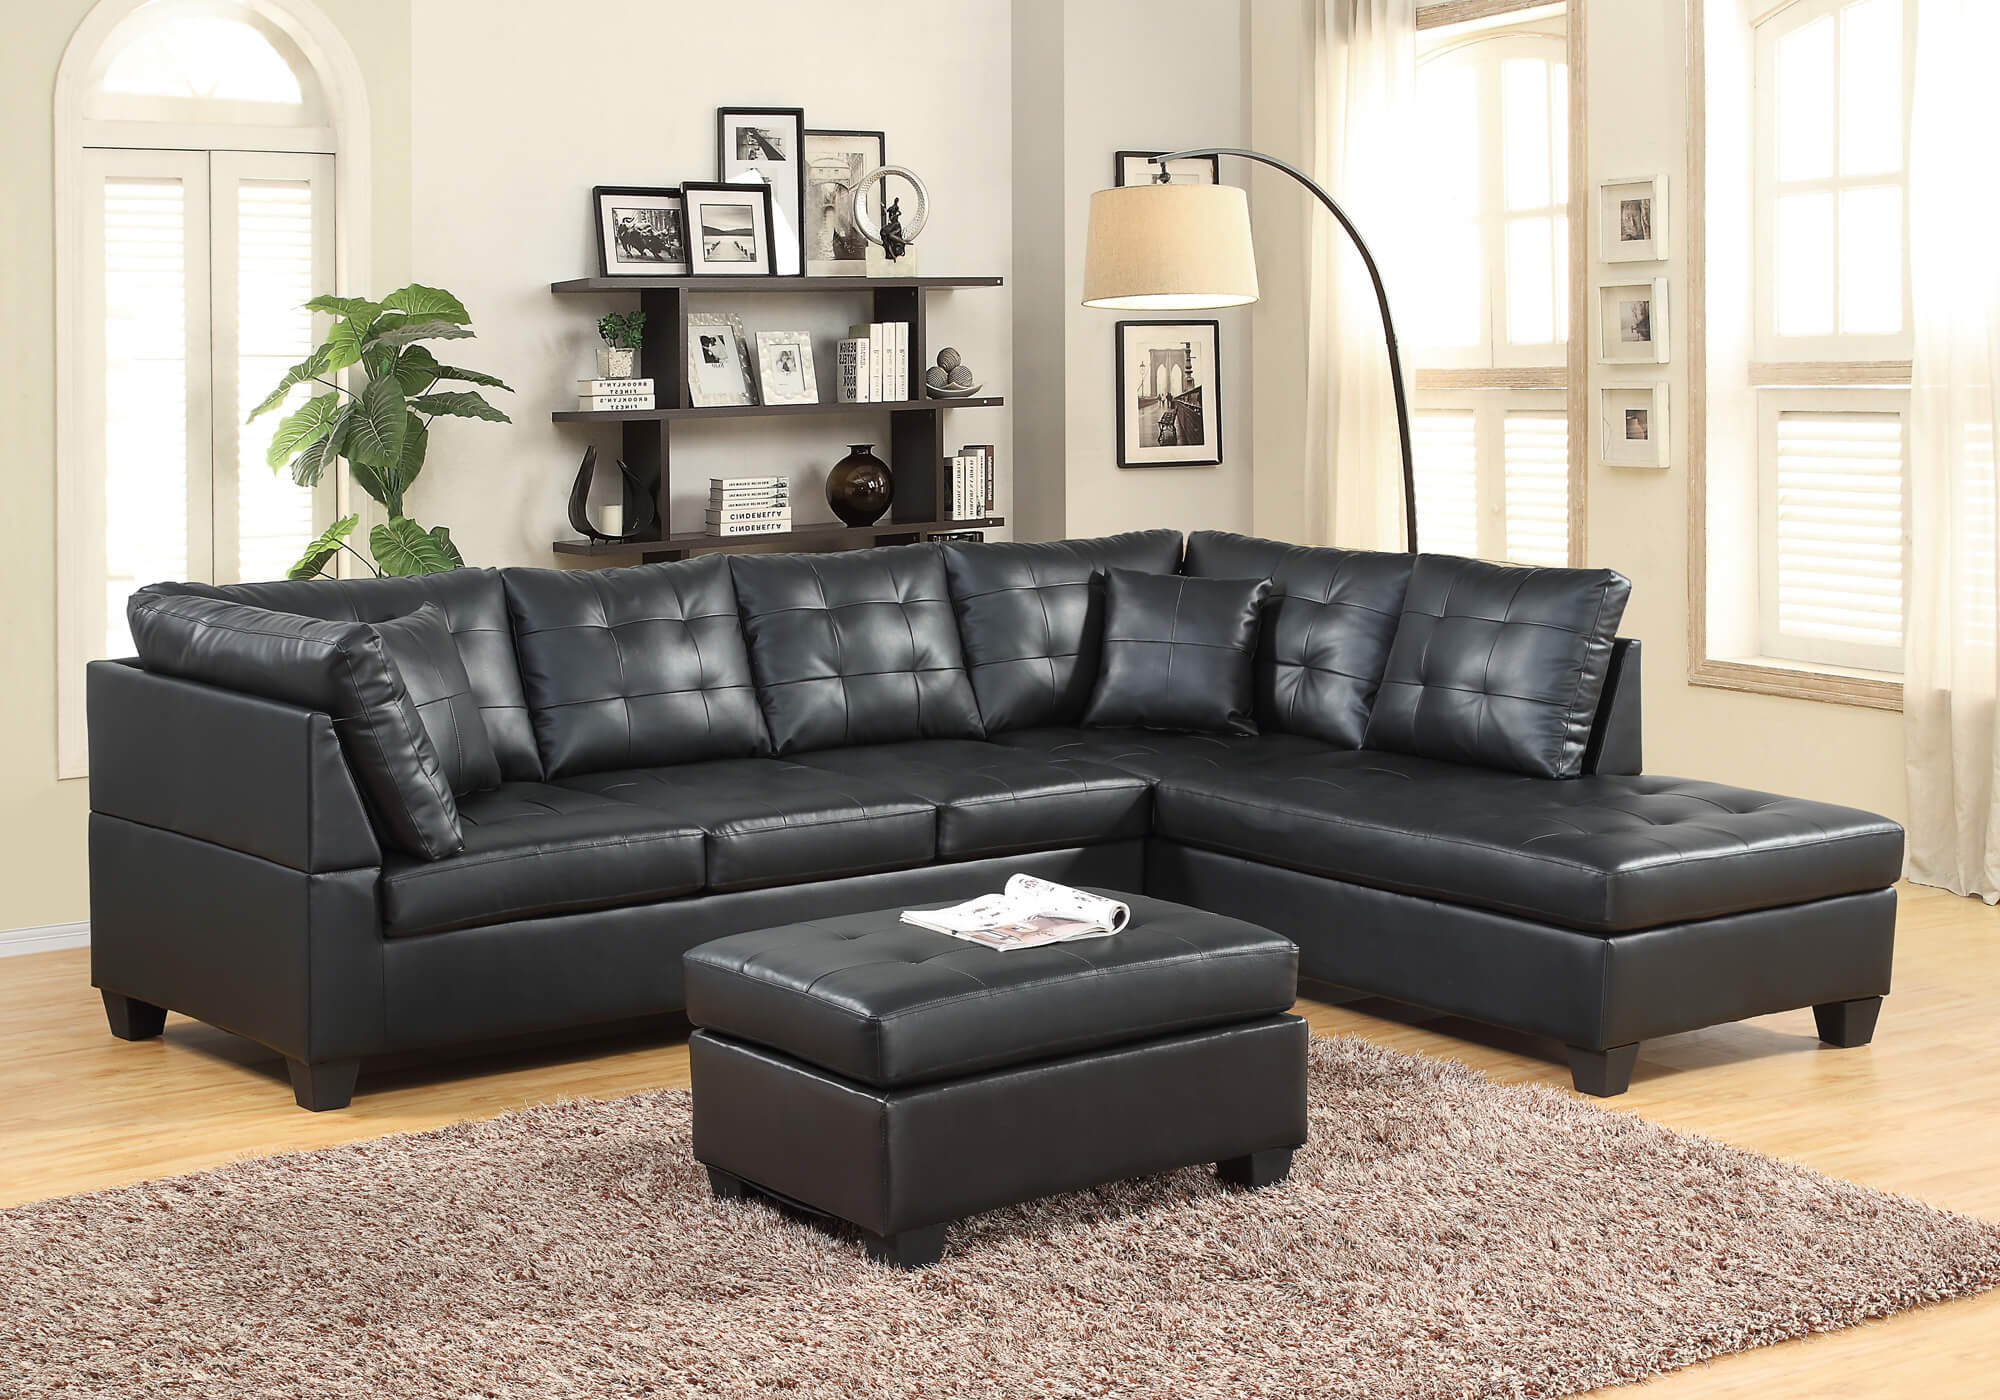 Black leather like sectiona sectional sofa sets for Black living room furniture sets